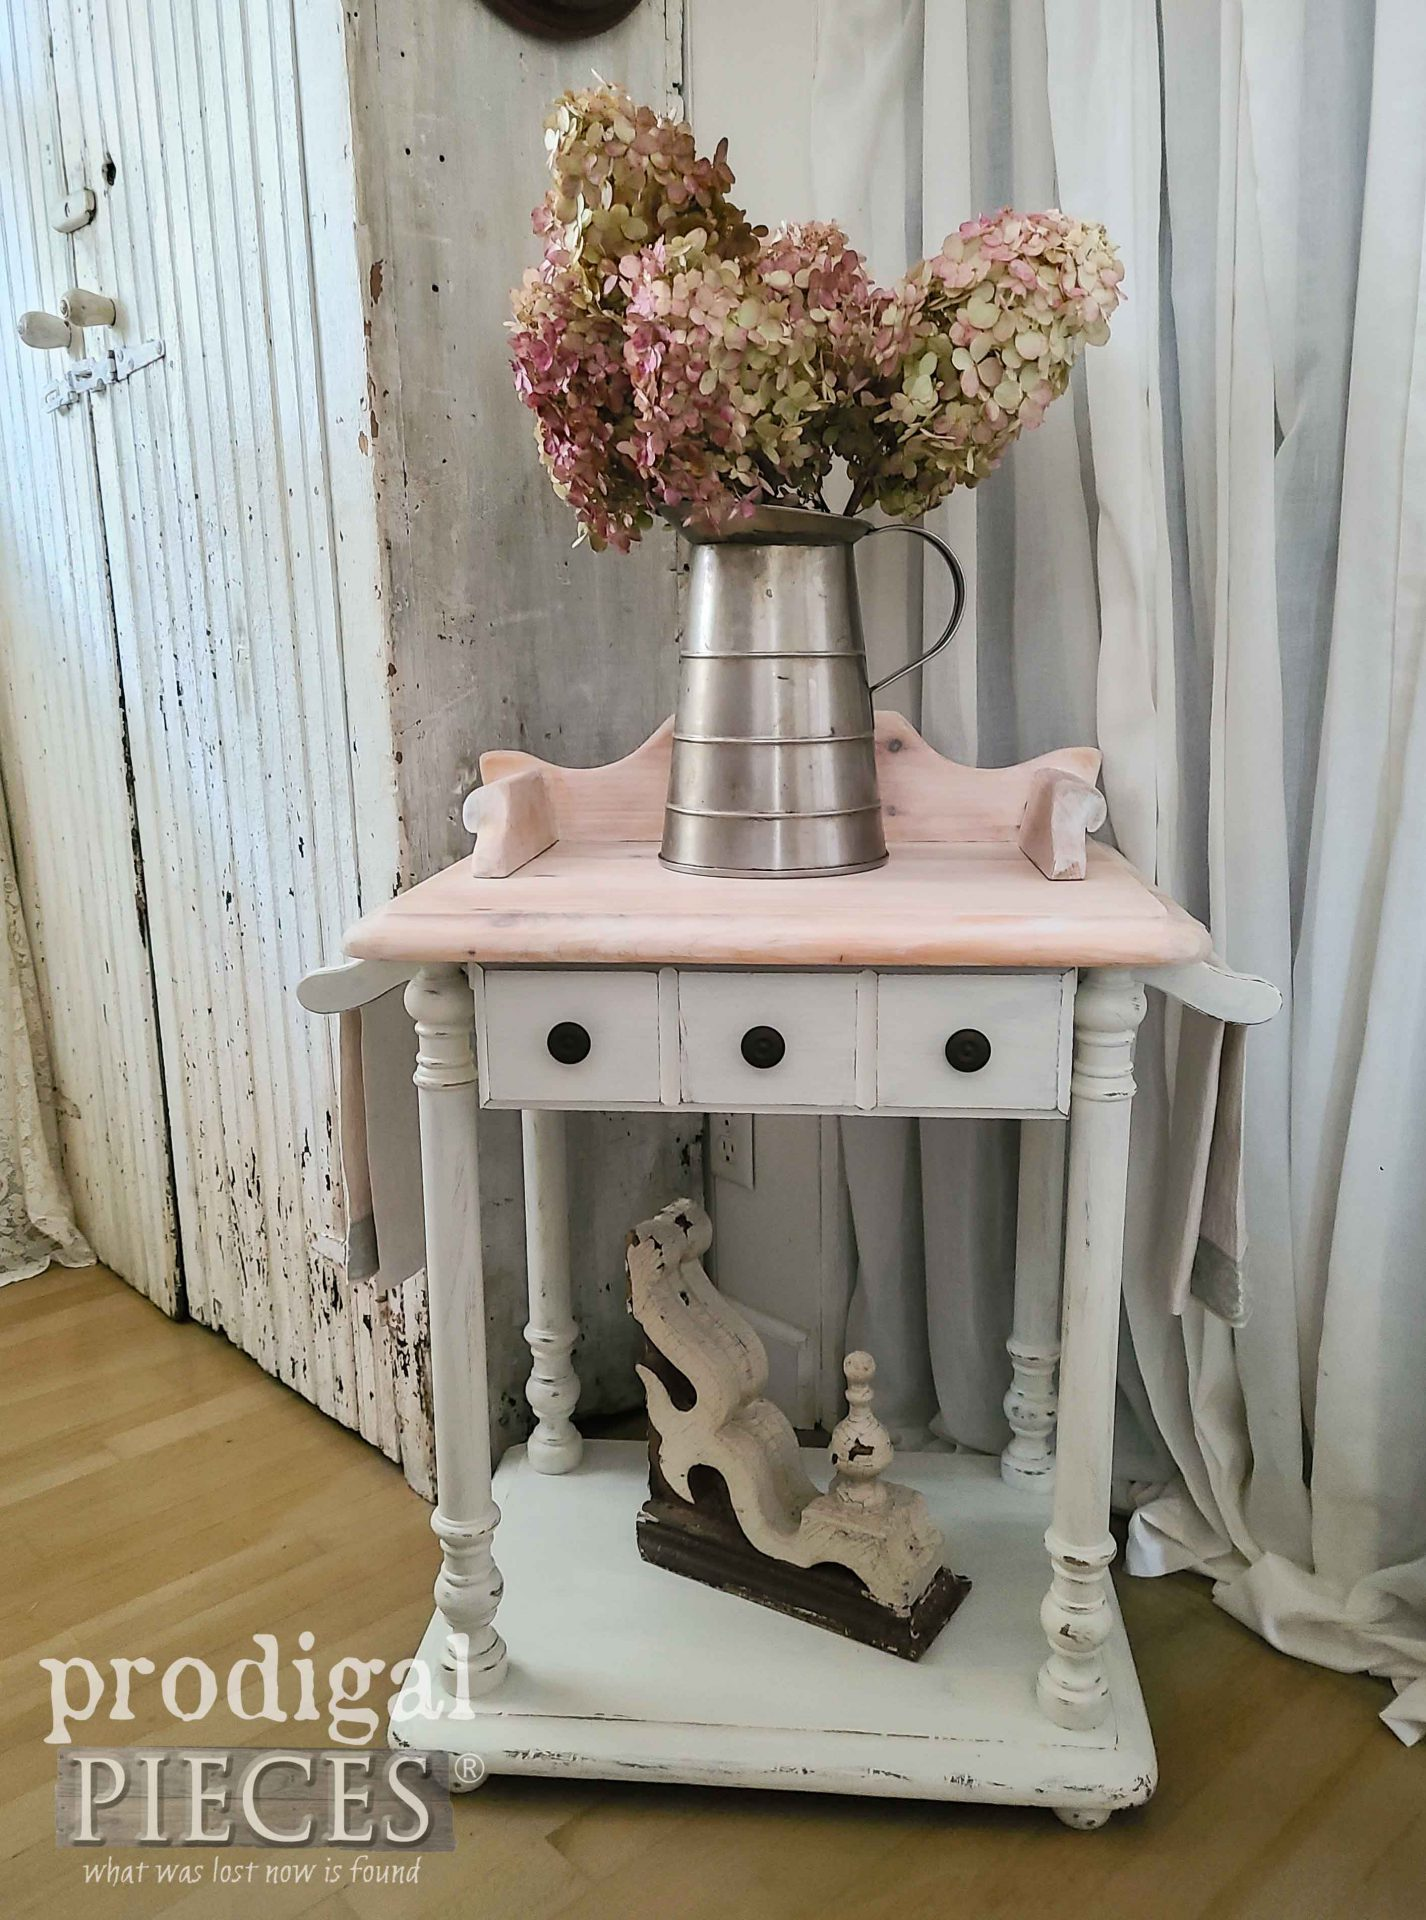 Vintage Farmhouse Style Wash Stand in Antique White by Larissa of Prodigal Pieces | prodigalpieces.com #prodigalpieces #diy #farmhouse #home #vintage